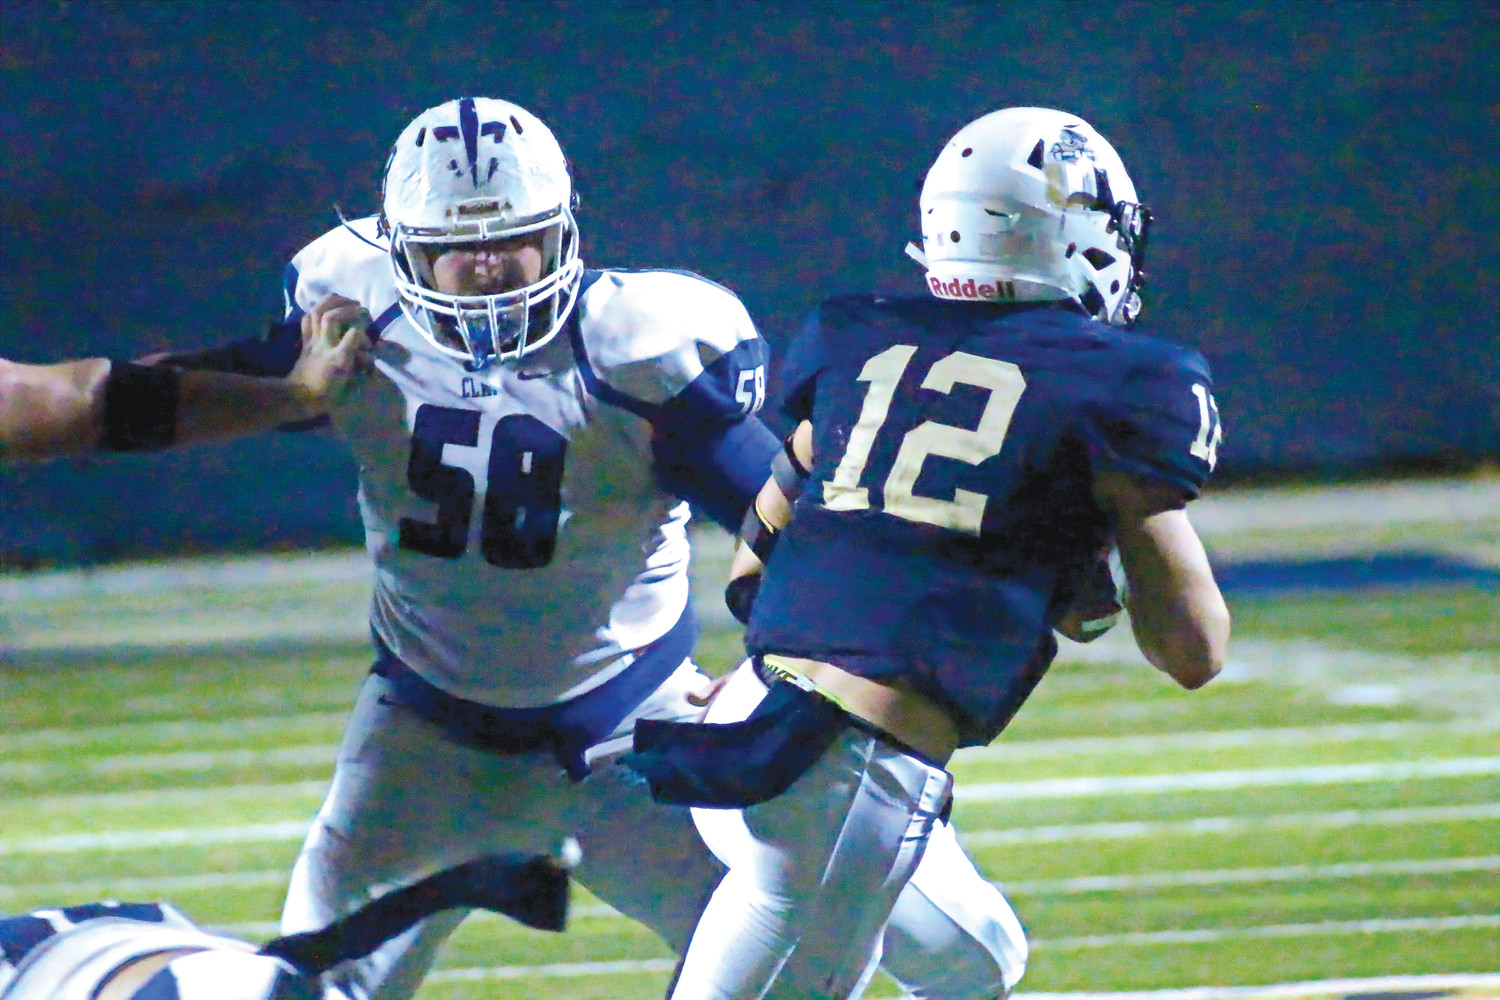 Clay High defensive tackle Colby Butler eyeballs University Christian quarterback in Blue Devils win Nov. 3 that propelled Clay into the Class 5A state playoffs.